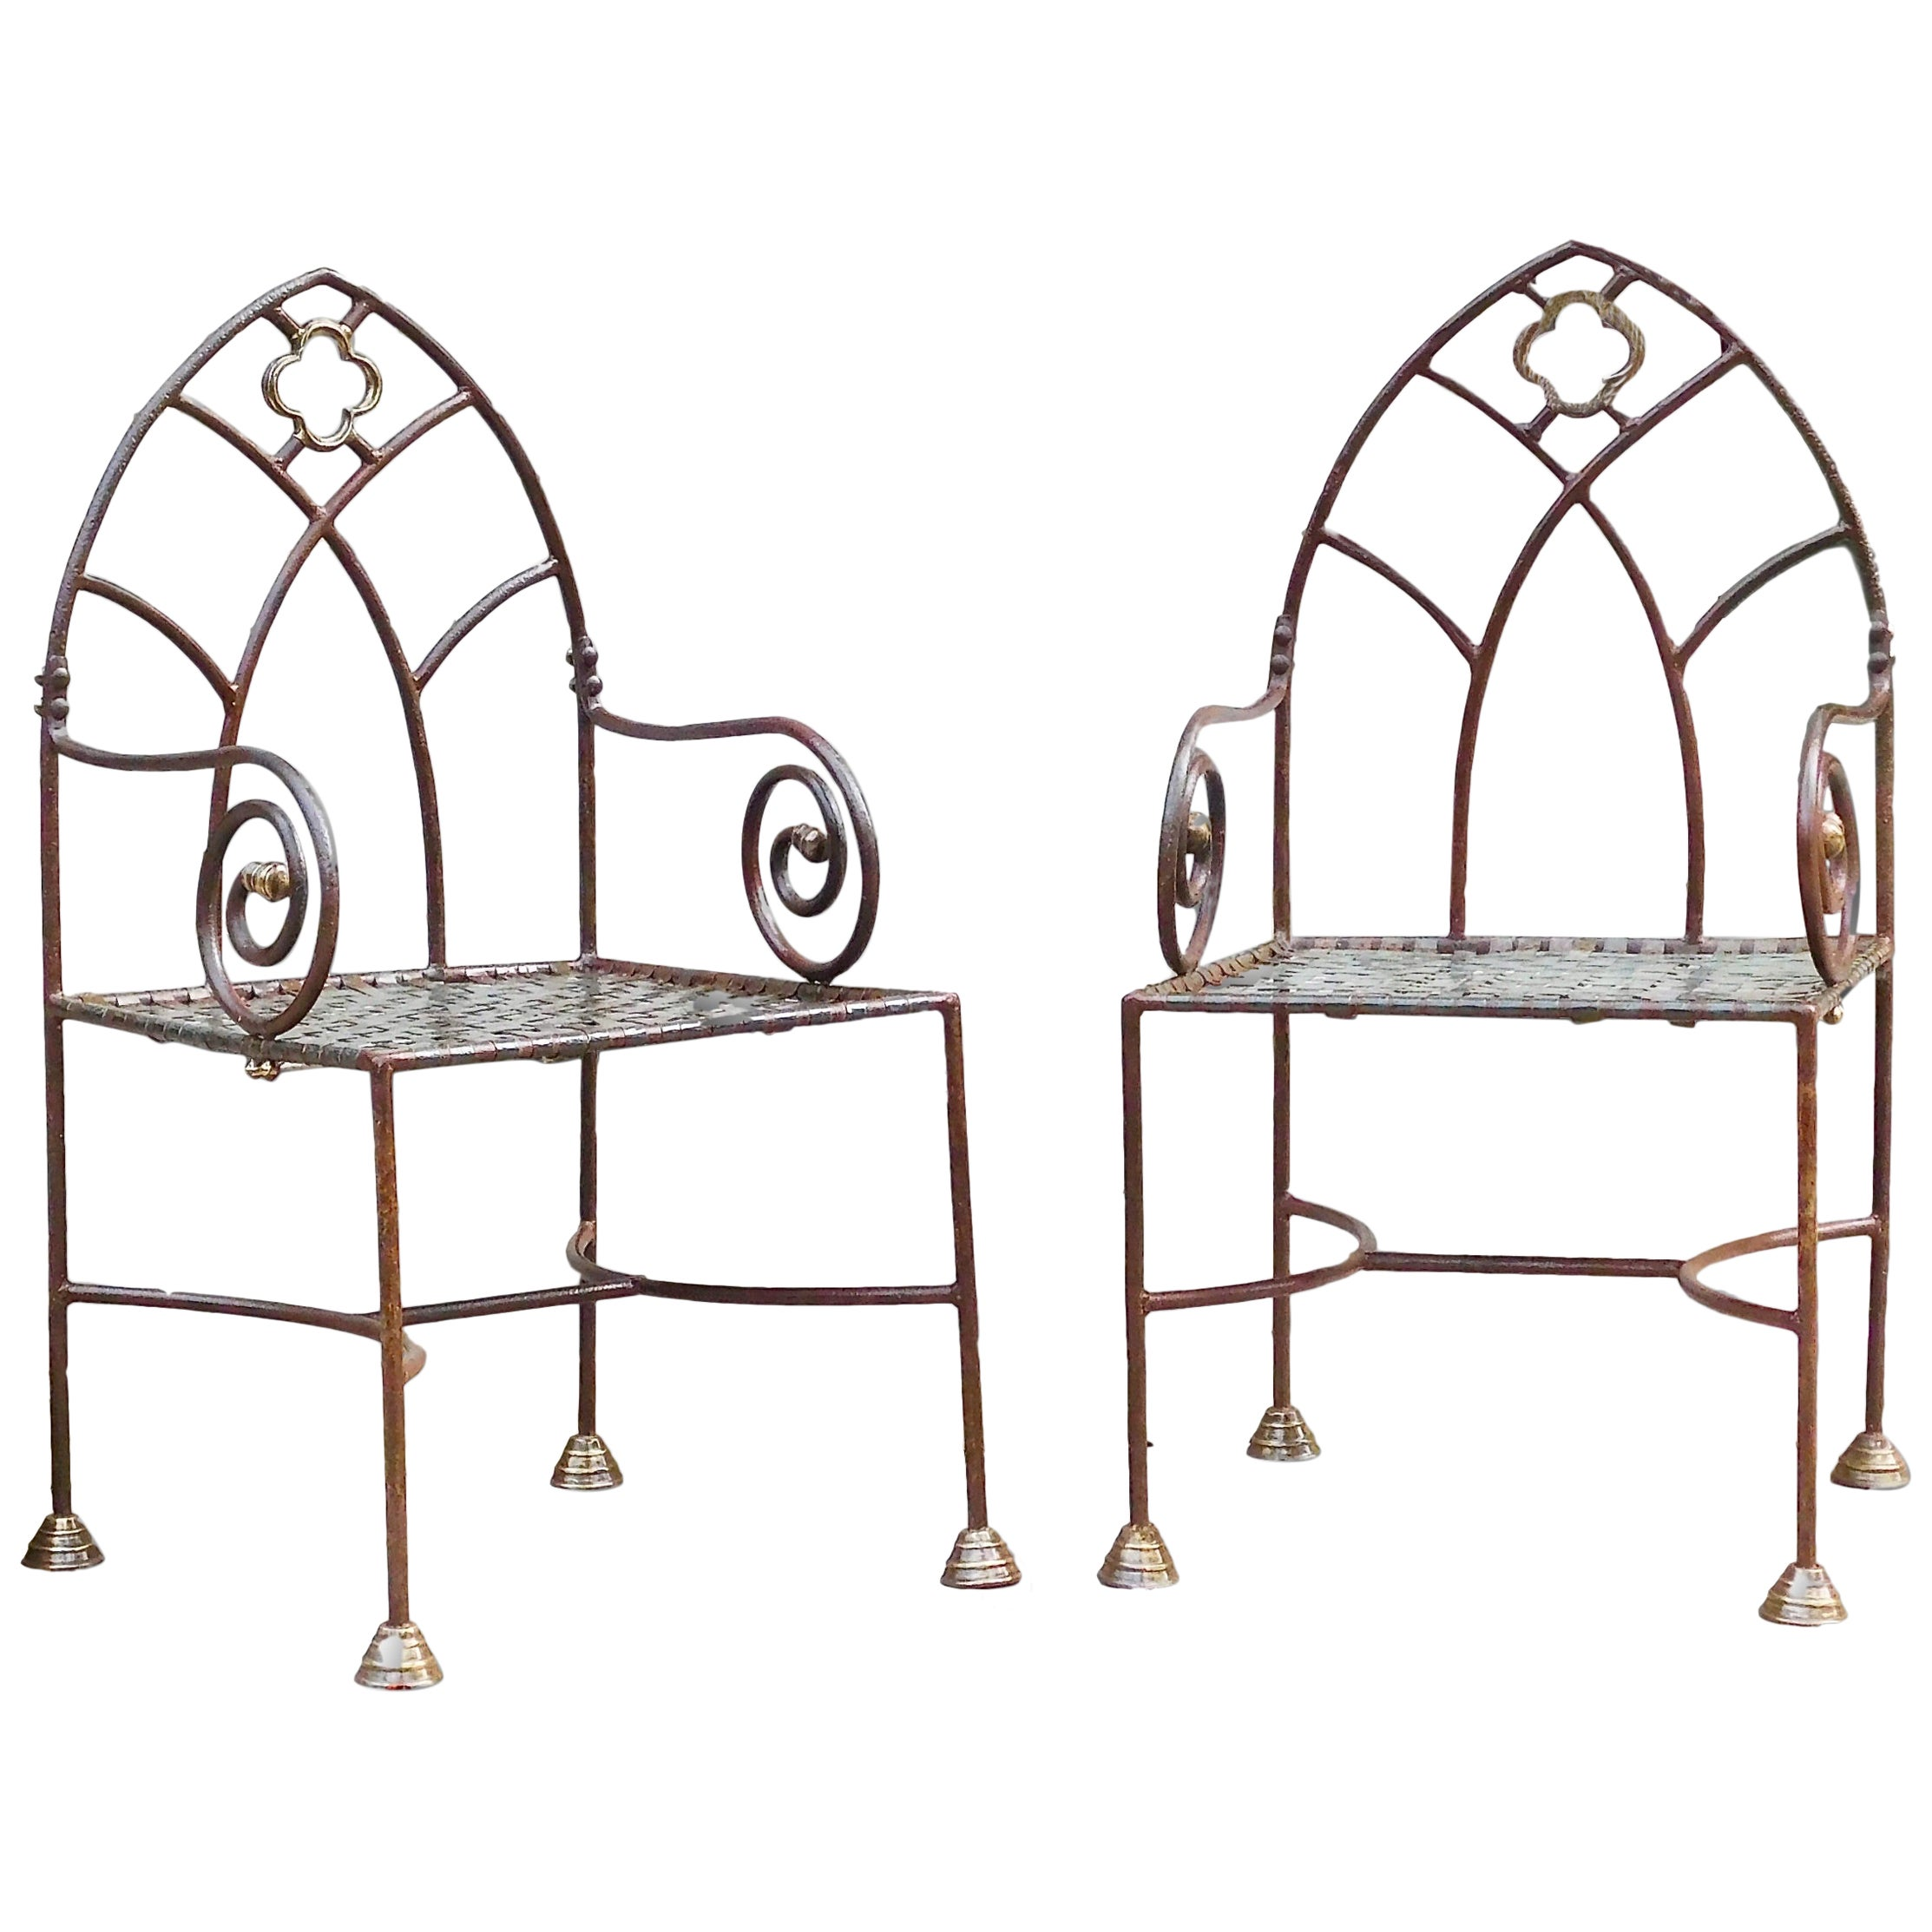 Set of Six English Gothic Revival Wrought Iron Dining or Garden Armchairs